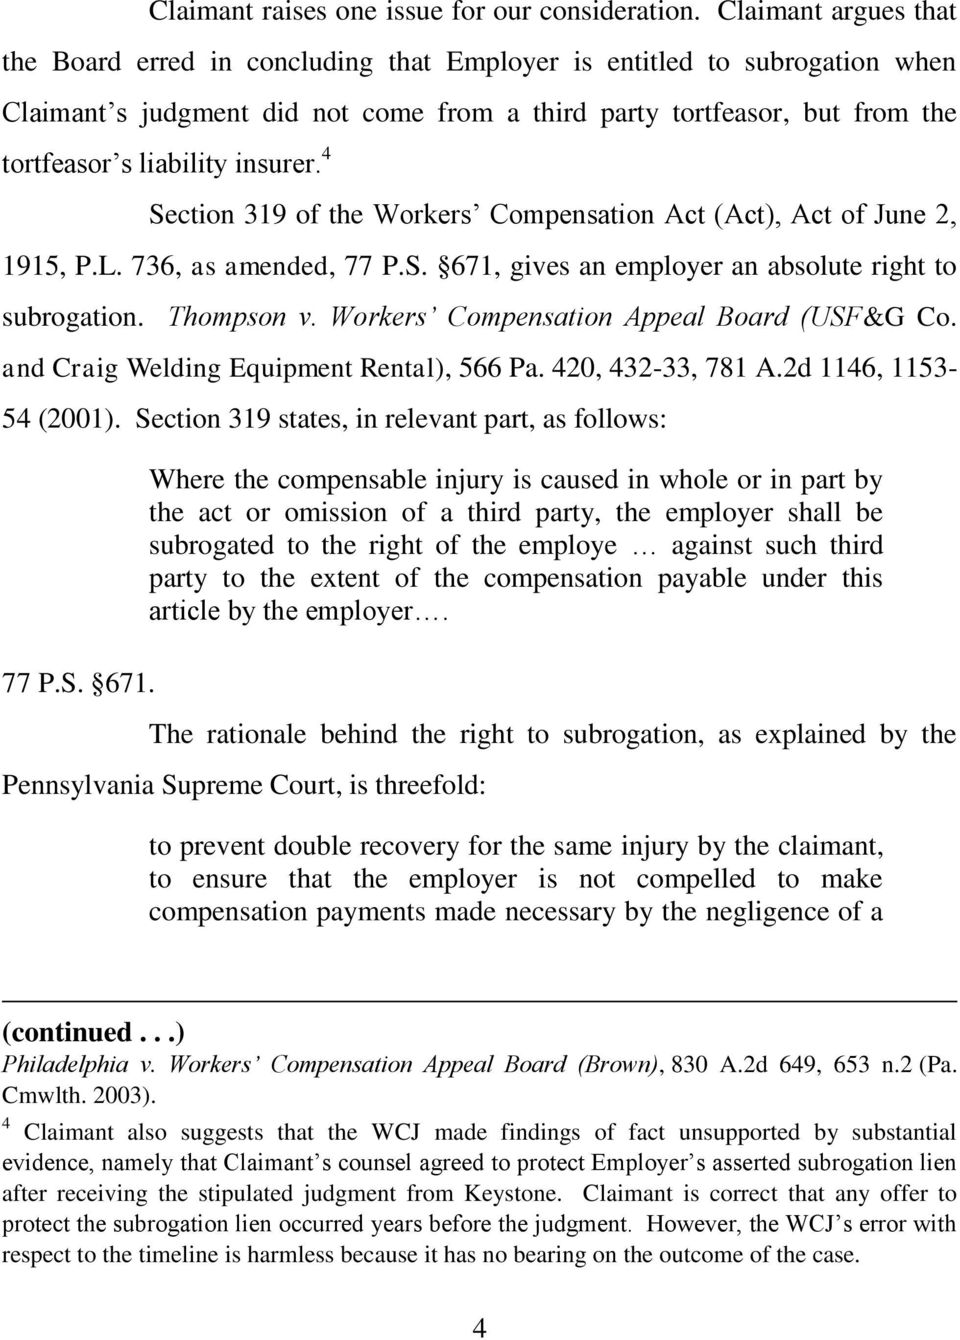 insurer. 4 Section 319 of the Workers Compensation Act (Act), Act of June 2, 1915, P.L. 736, as amended, 77 P.S. 671, gives an employer an absolute right to subrogation. Thompson v.